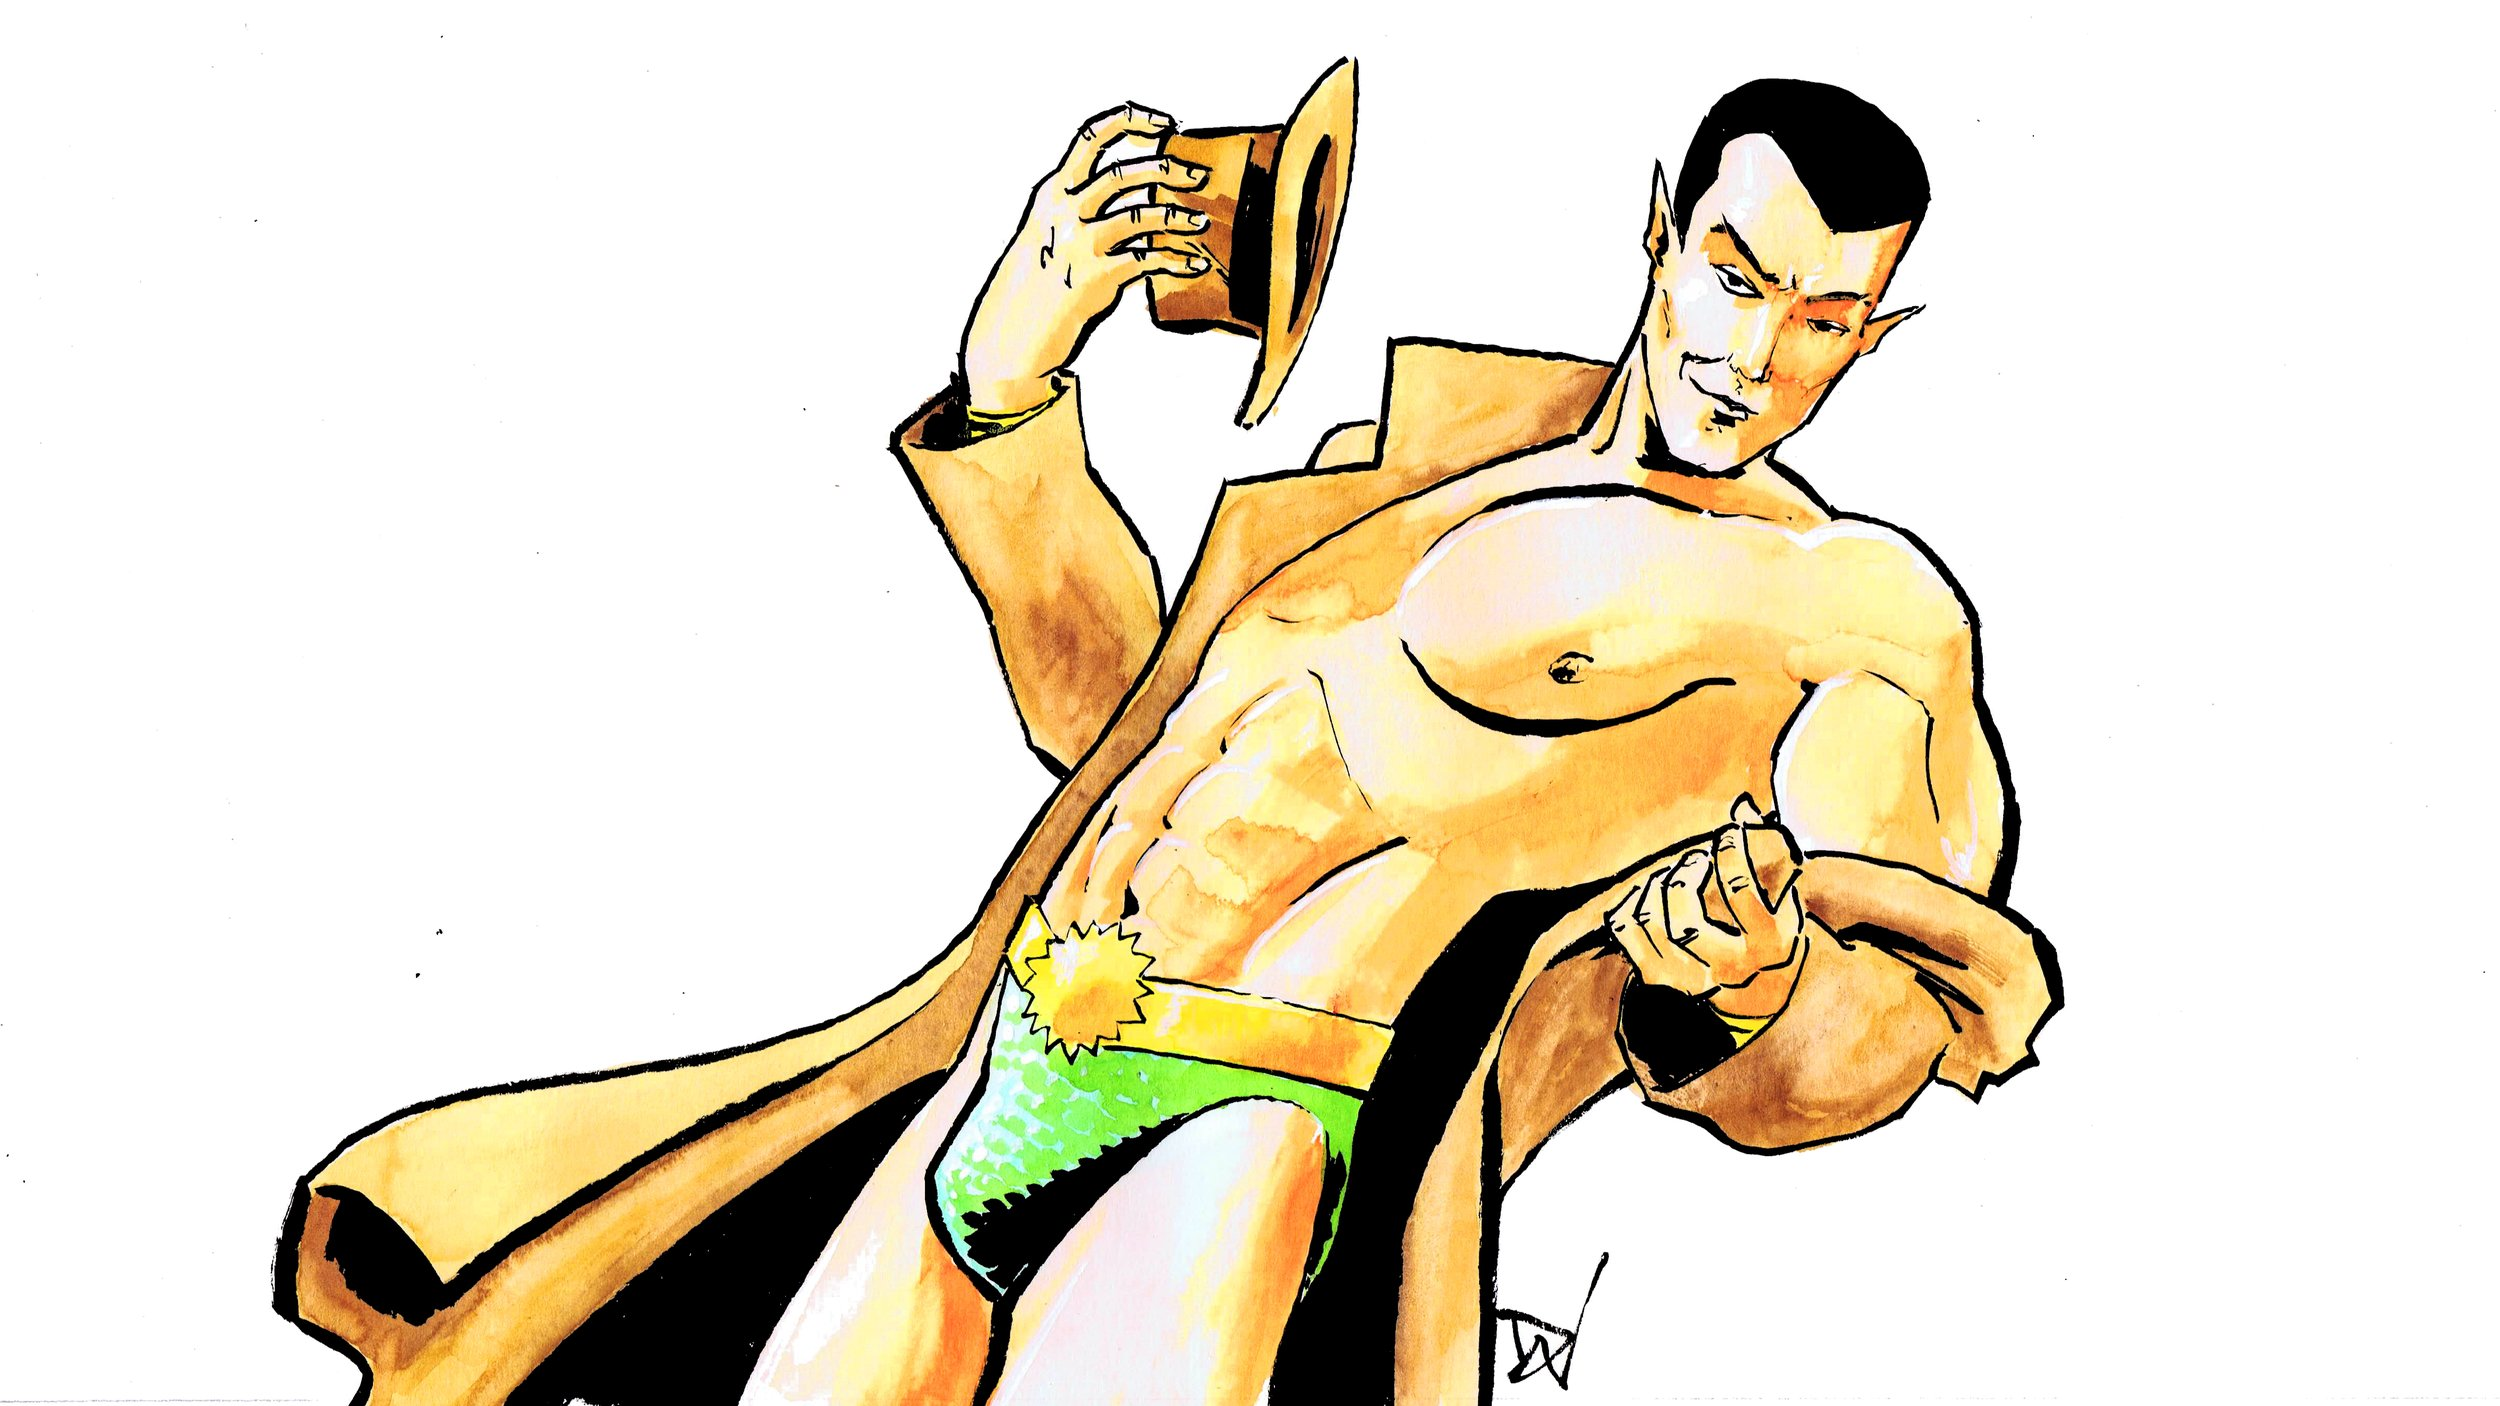 Namor! Art by David Wynne